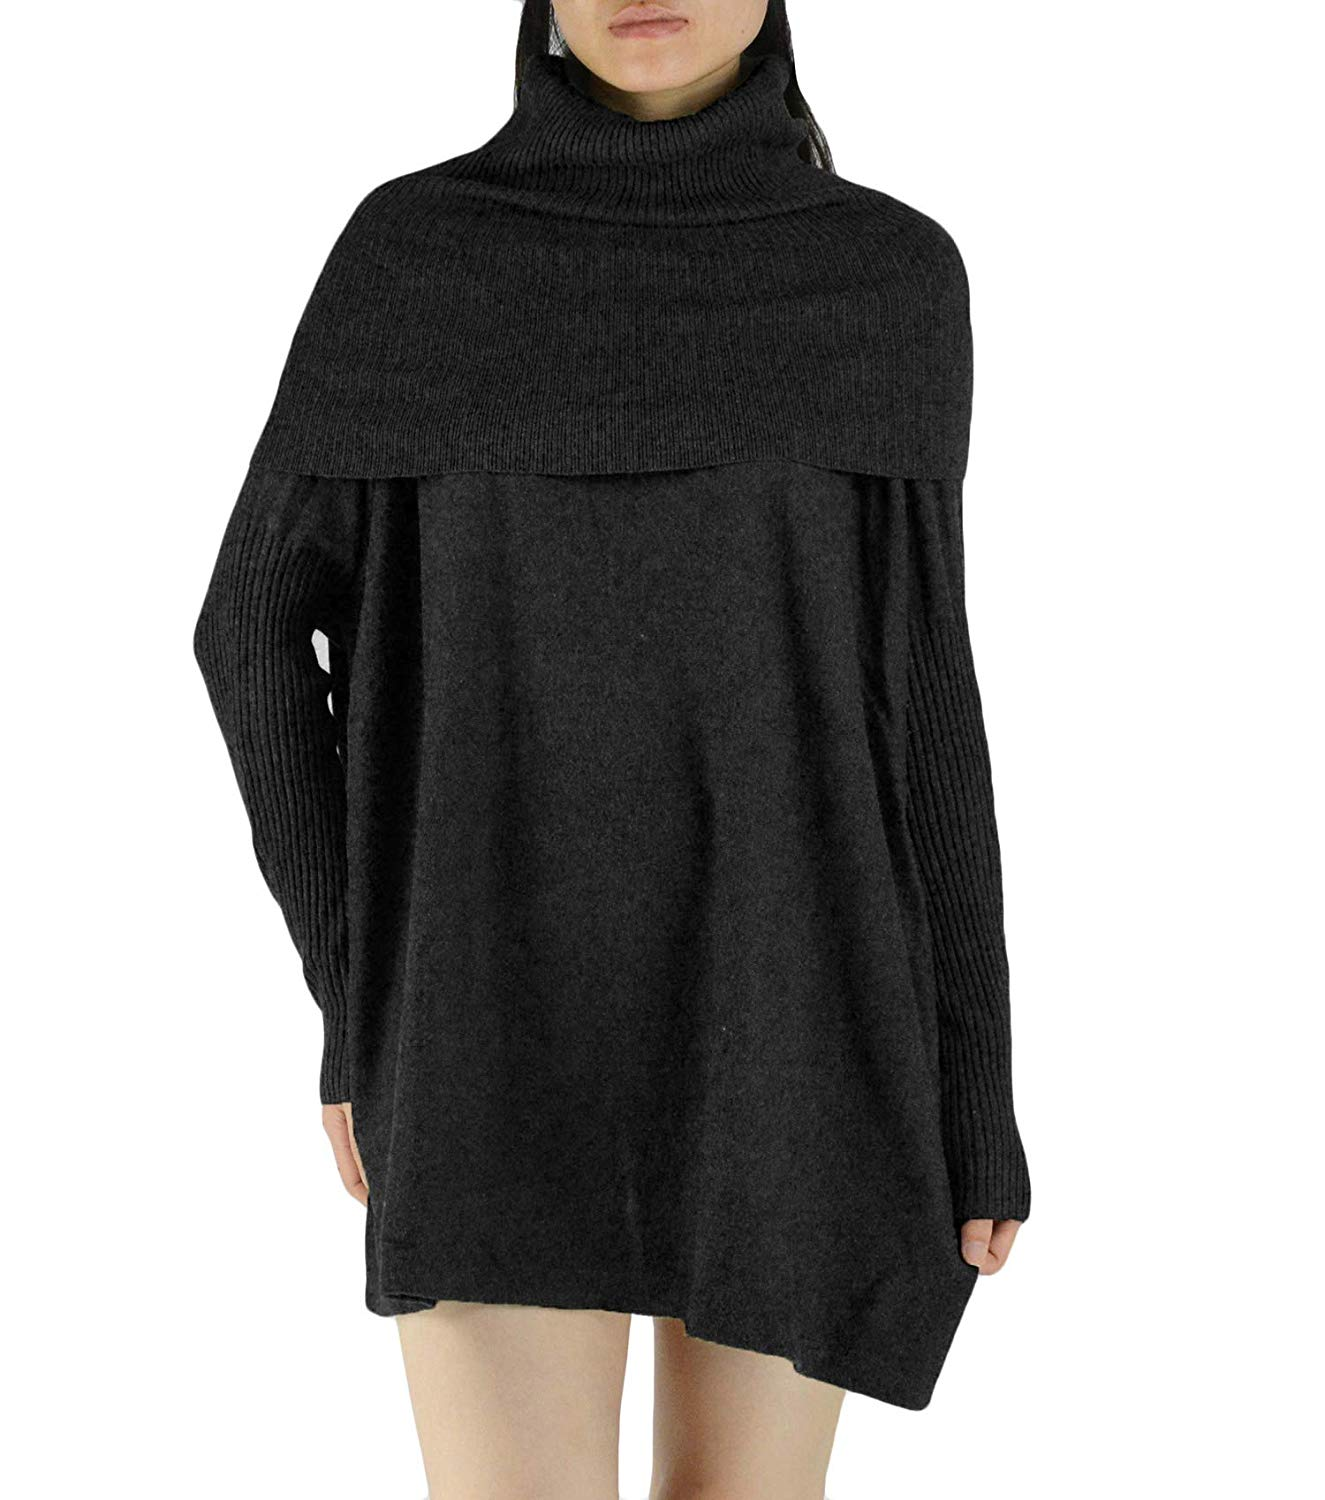 YSJERA Women's Oversized Loose Turtleneck Long Sleeves Pullover Knit Sweater Top Shirts